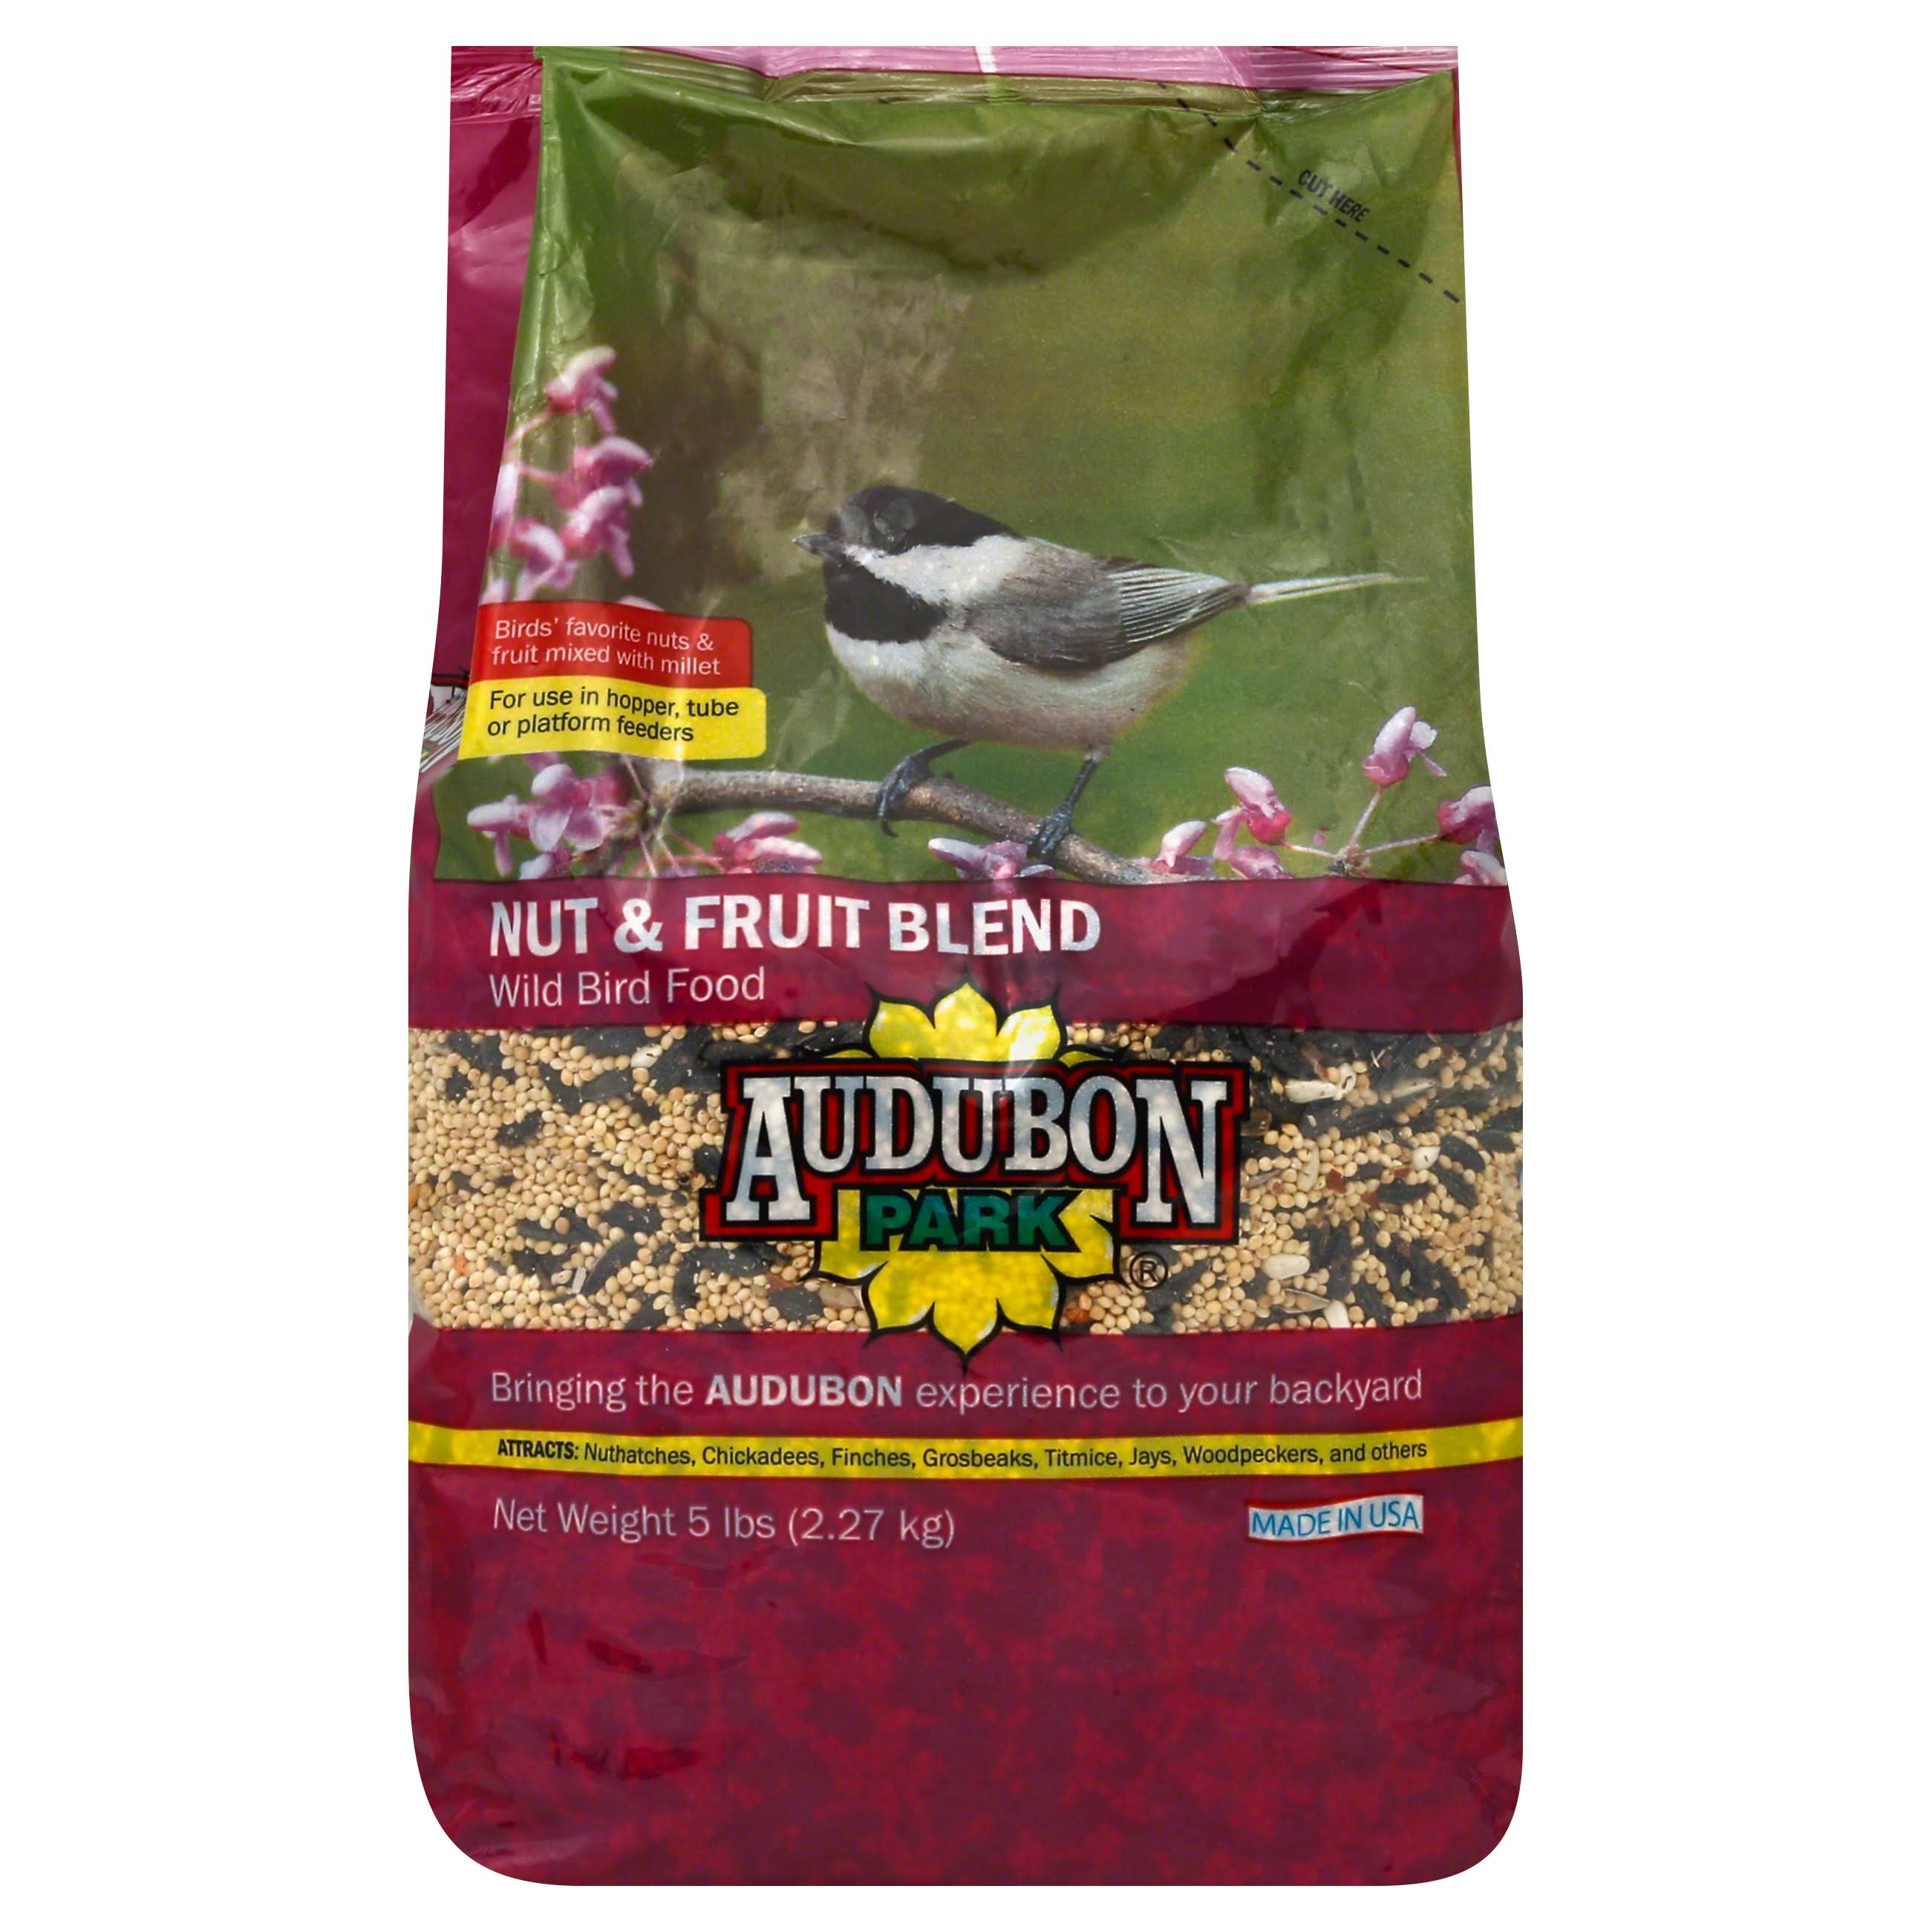 Audubon Park 12226 Wild Bird Food - Nut and Fruit Blend, 5lbs